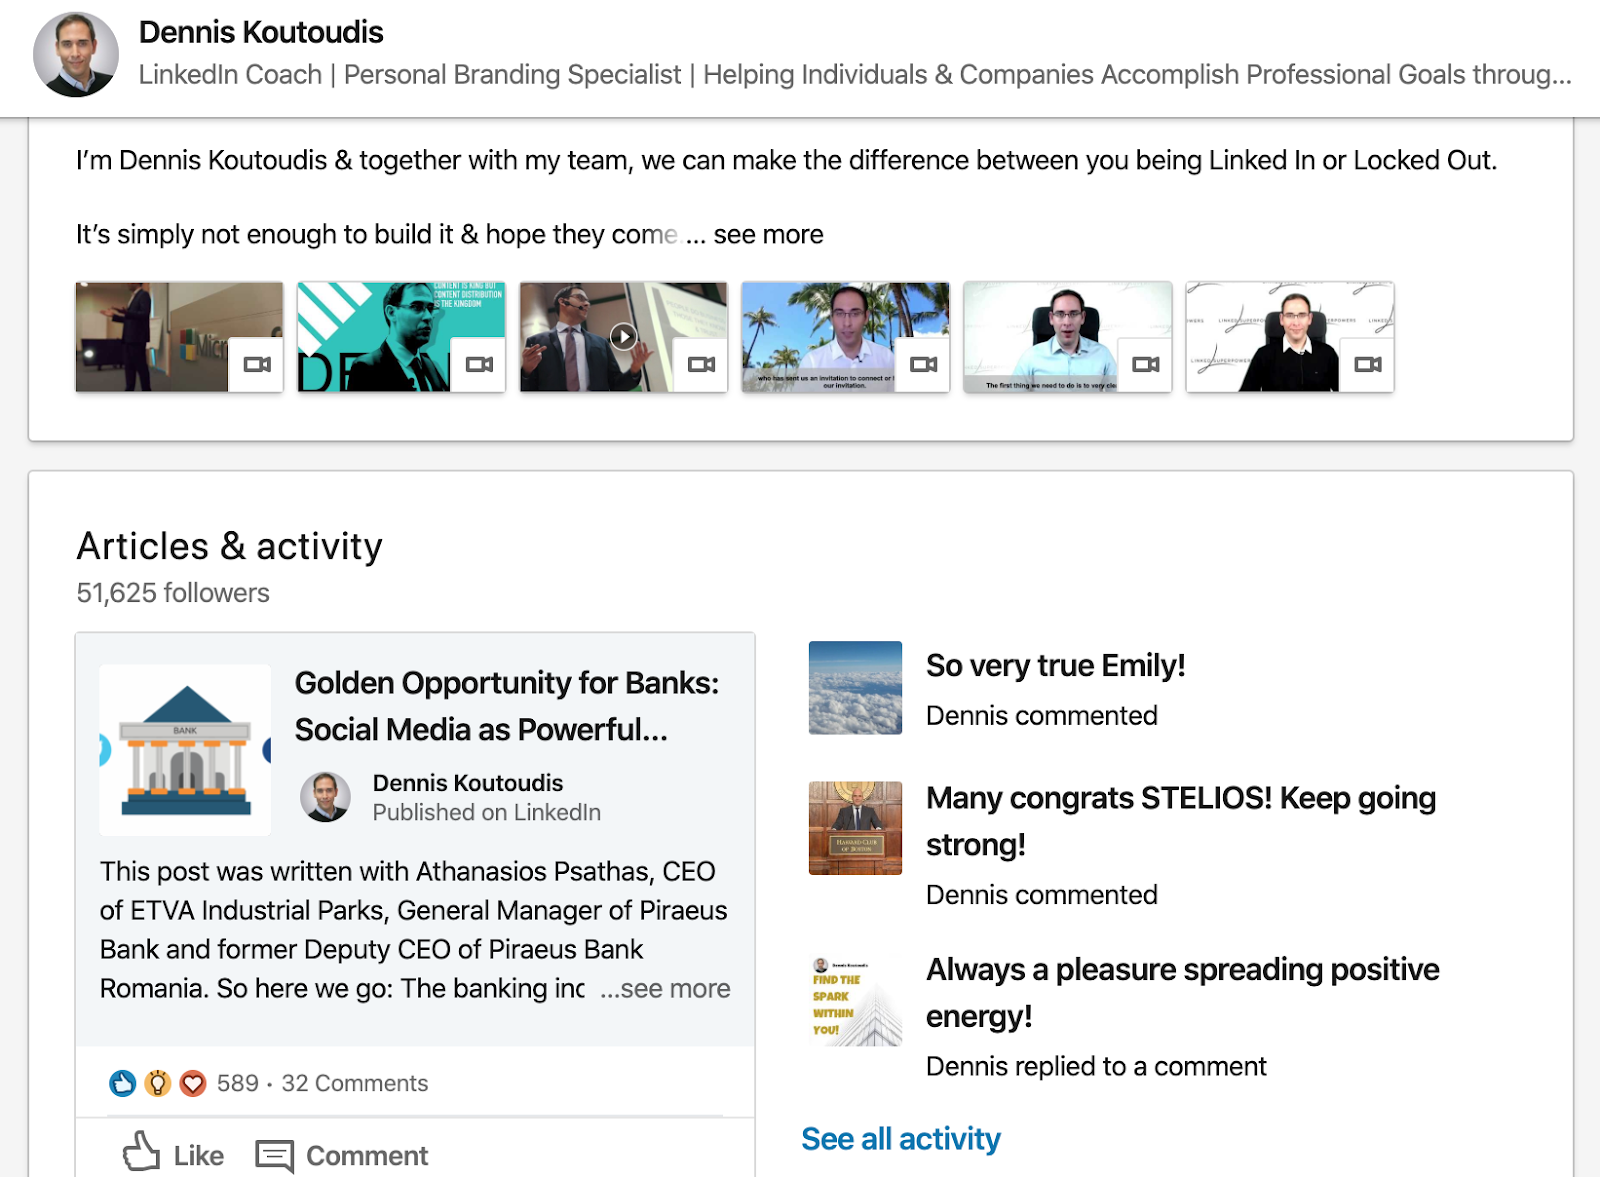 LinkedIn best practices by Dennis Koutoudis around comprehension and utility of visuals